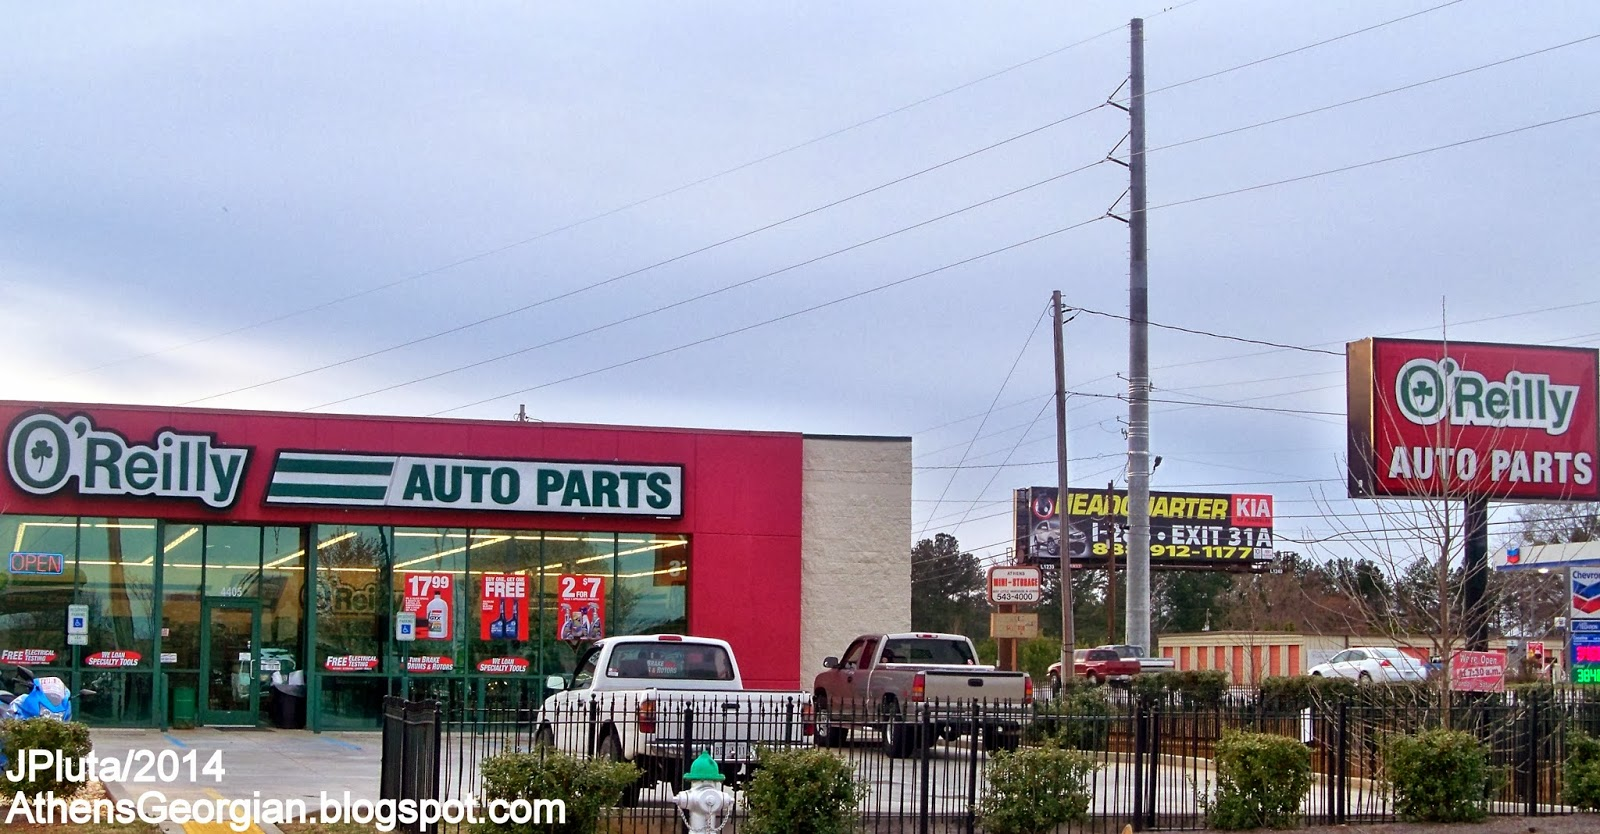 86 Atlanta Auto Parts Craigslist Craigslist Stockton Auto Partscraigslist Parts For In Ca